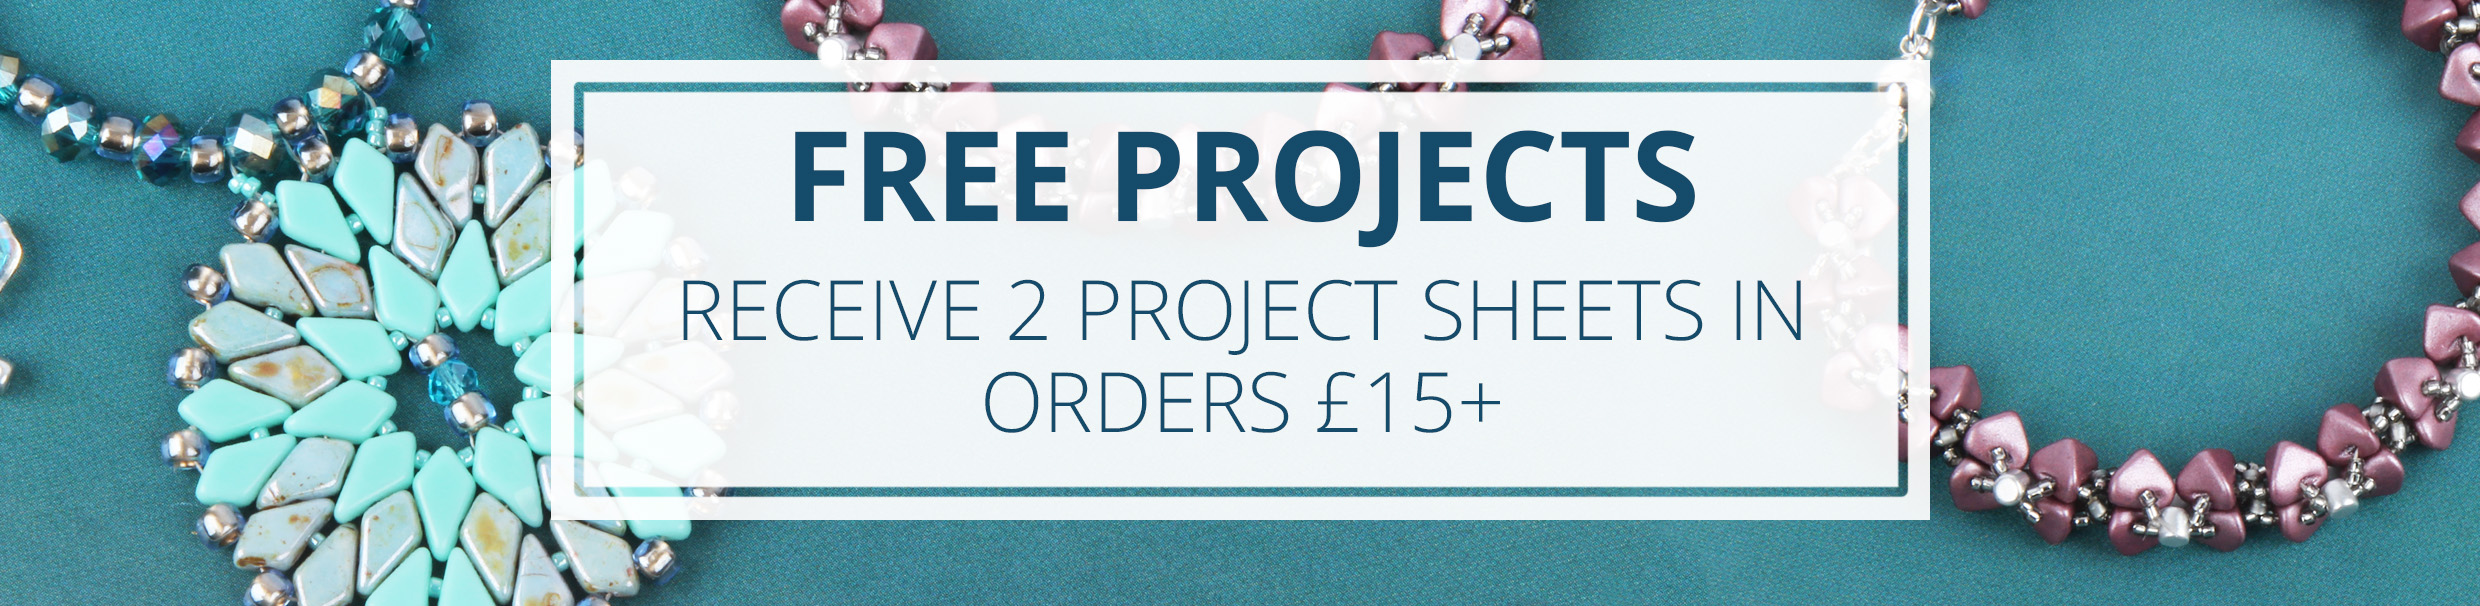 free project sheets